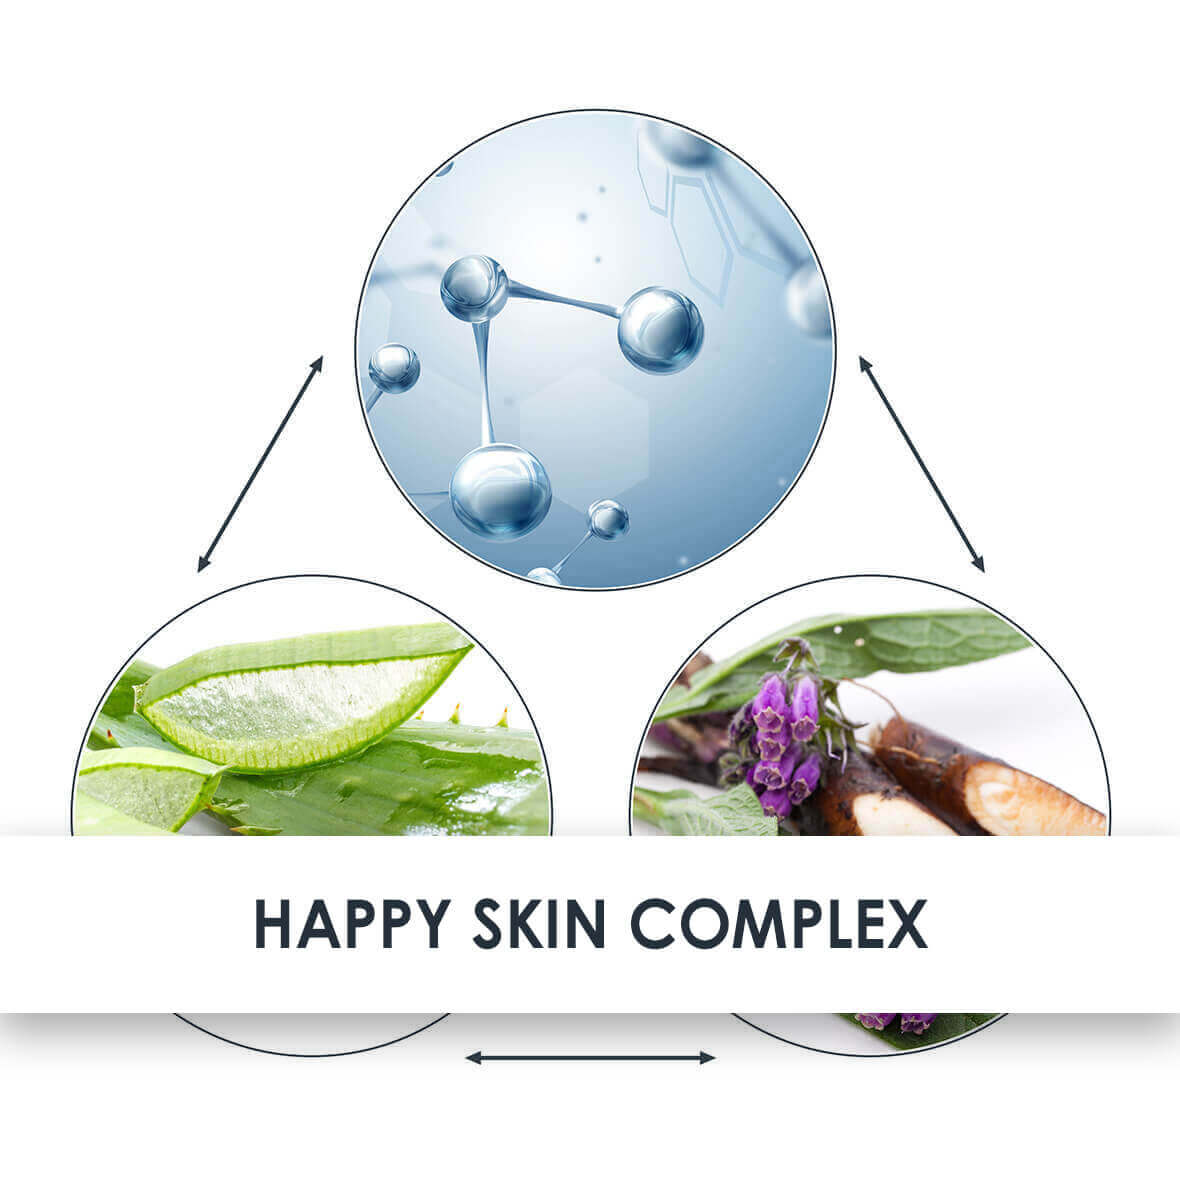 Happy Skin Complex Skincare Benefits